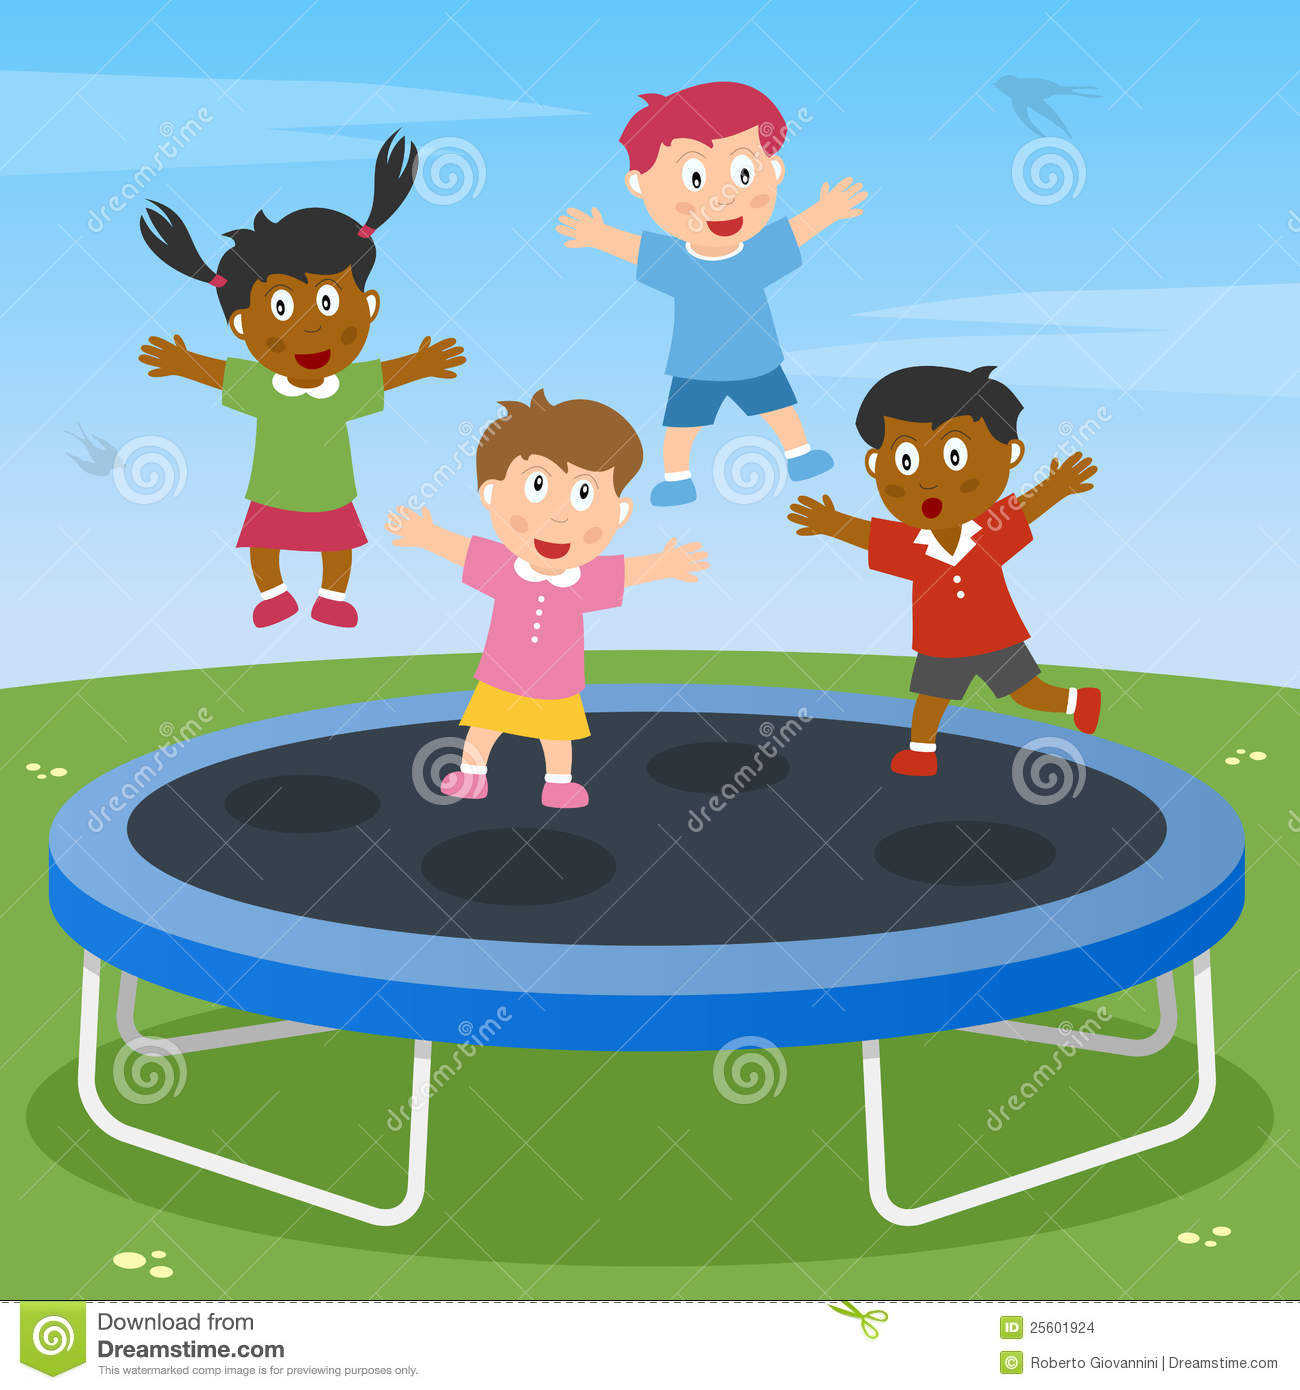 Small Courtyard Design Kids Playing On Trampoline Stock Images Image 25601924